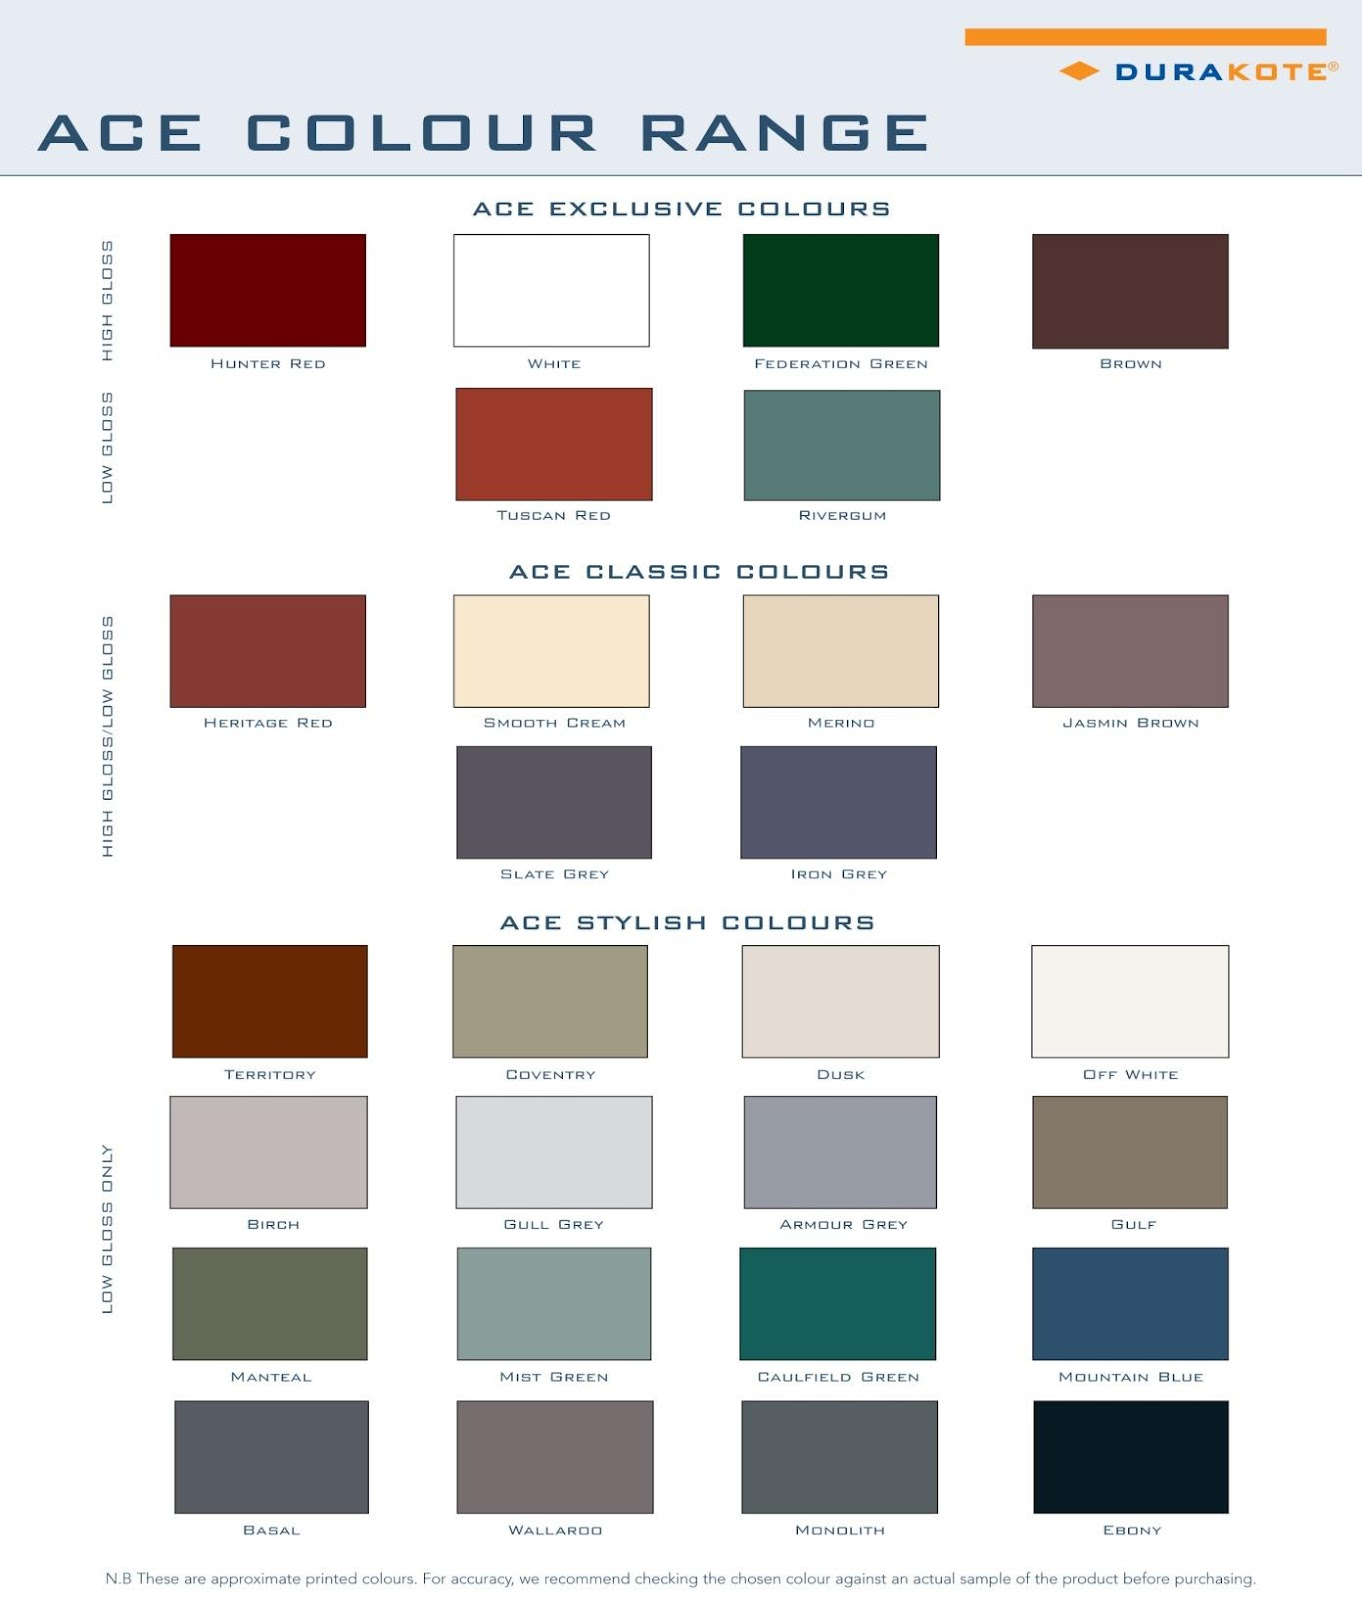 ace_colour_chart-large.jpg